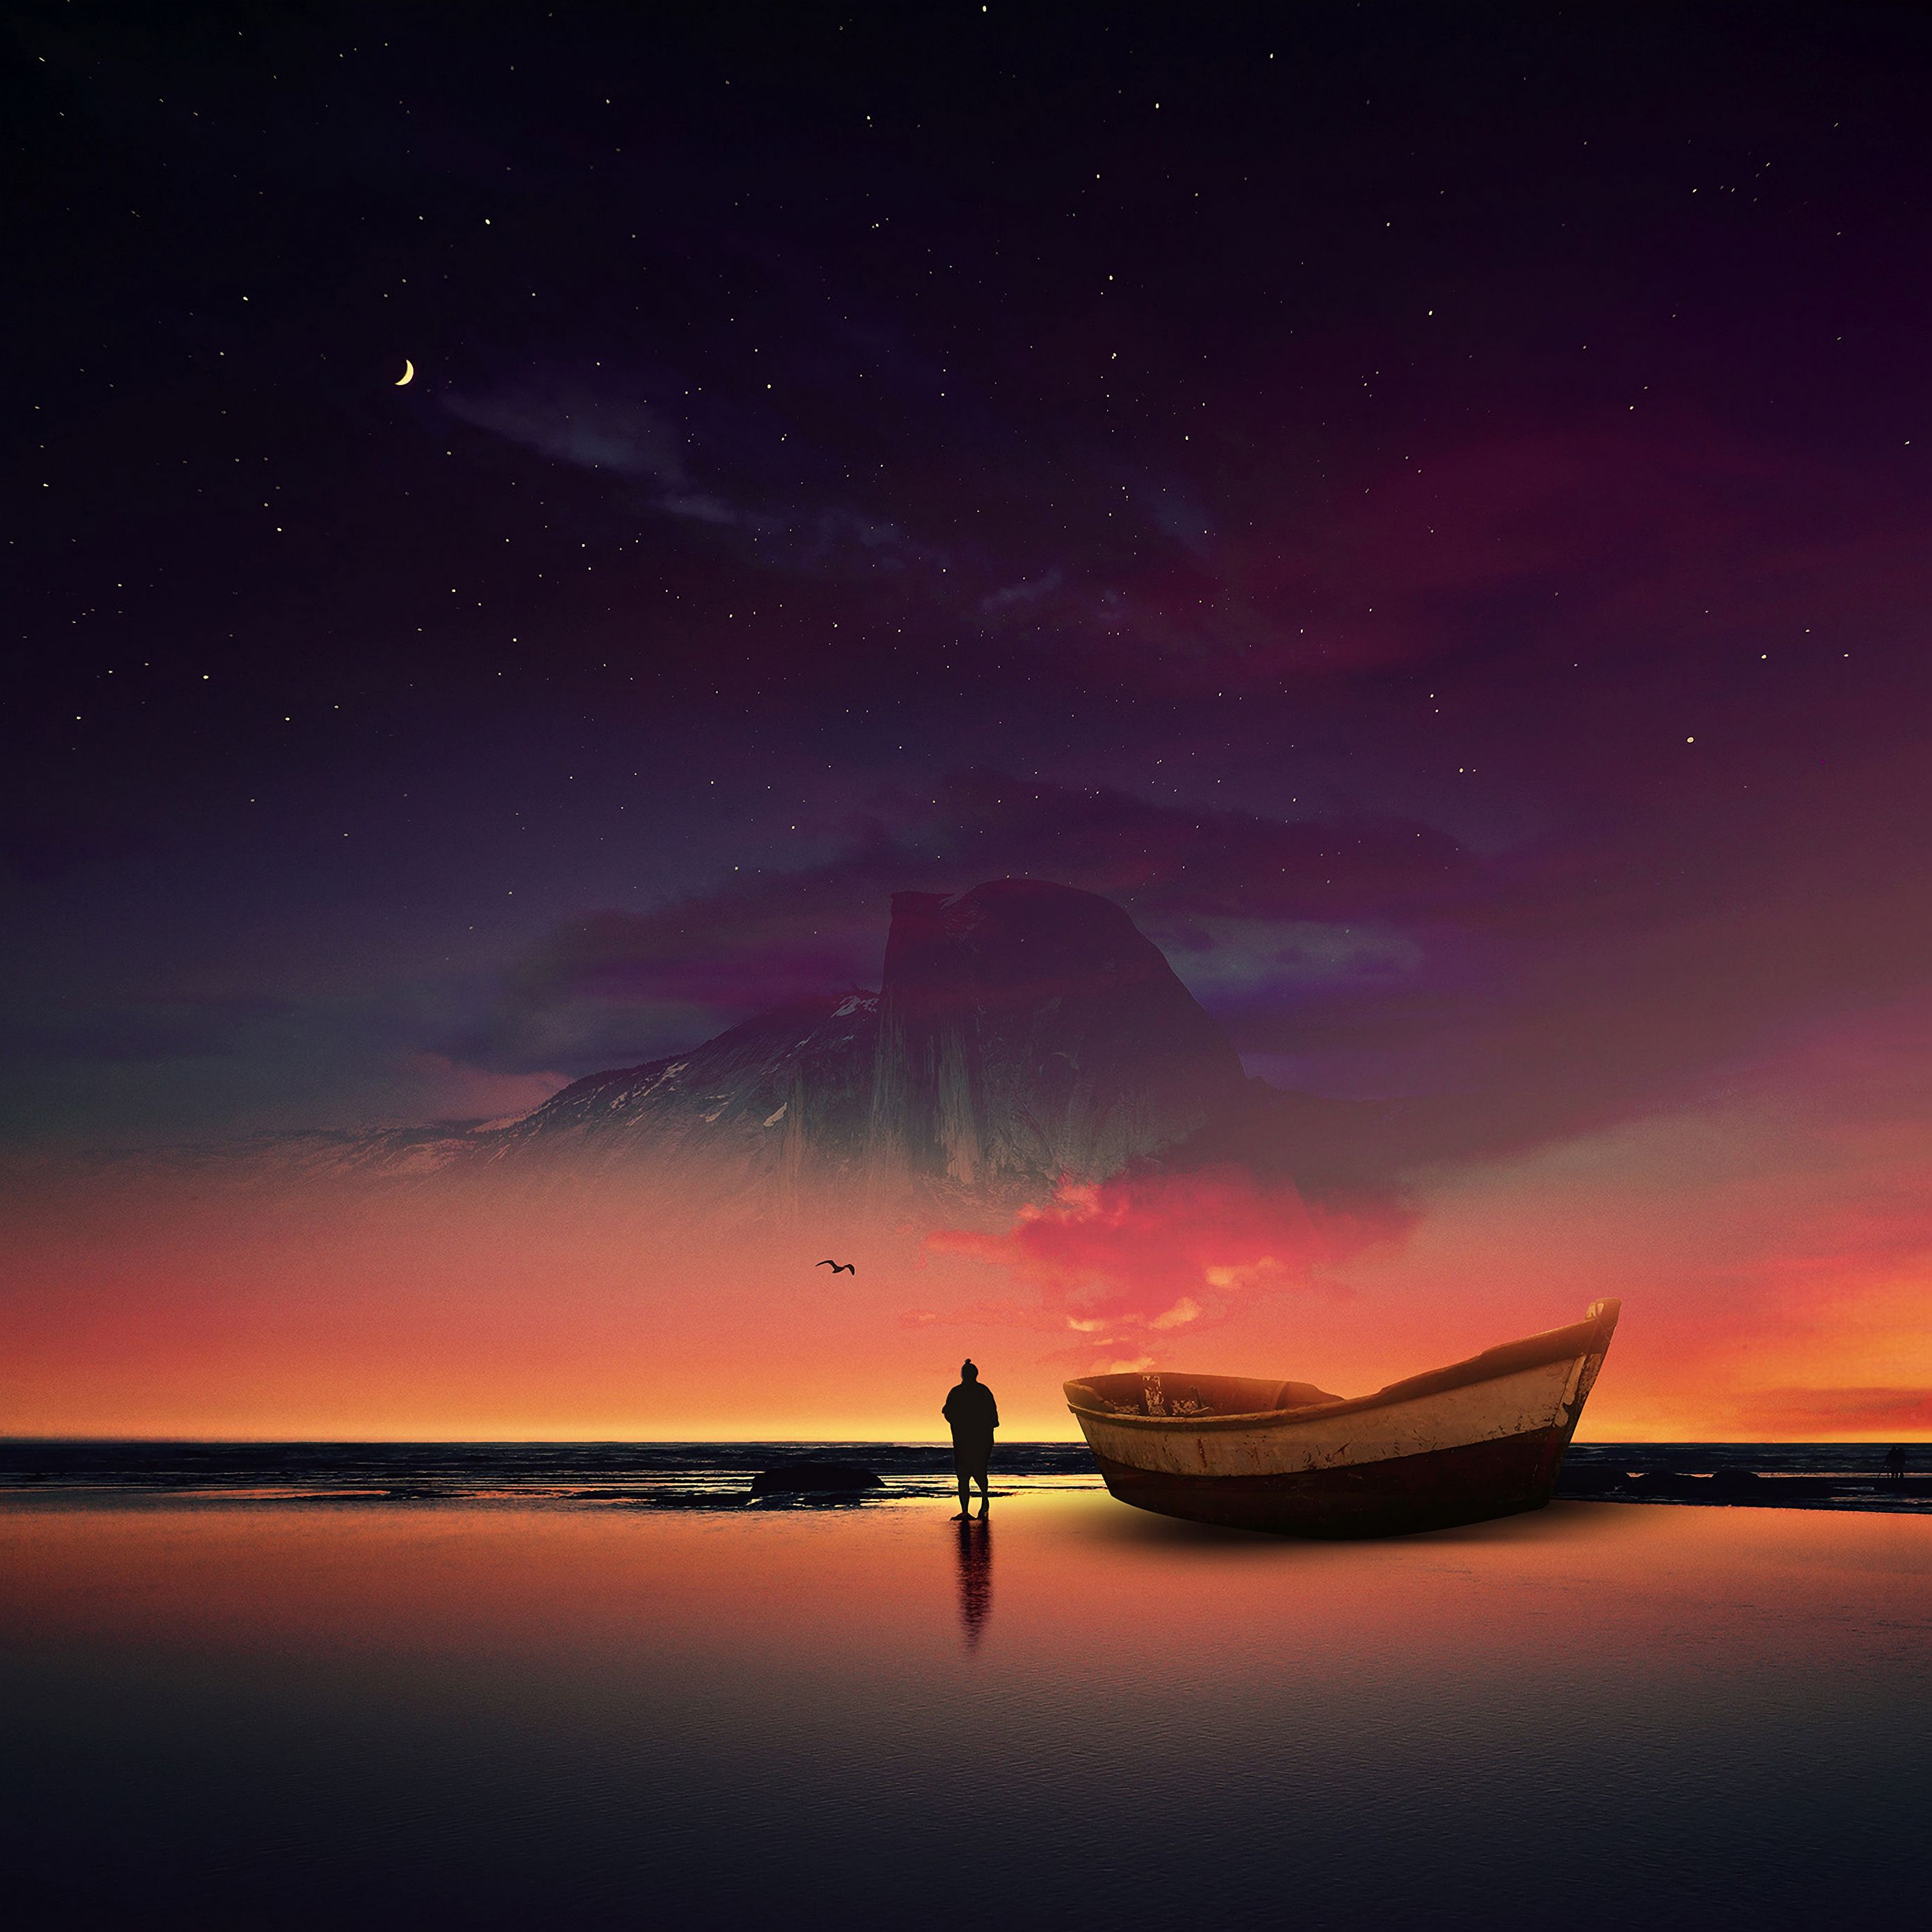 2780x2780 Wallpaper boat, silhouette, photoshop, shore, ocean, starry sky, night